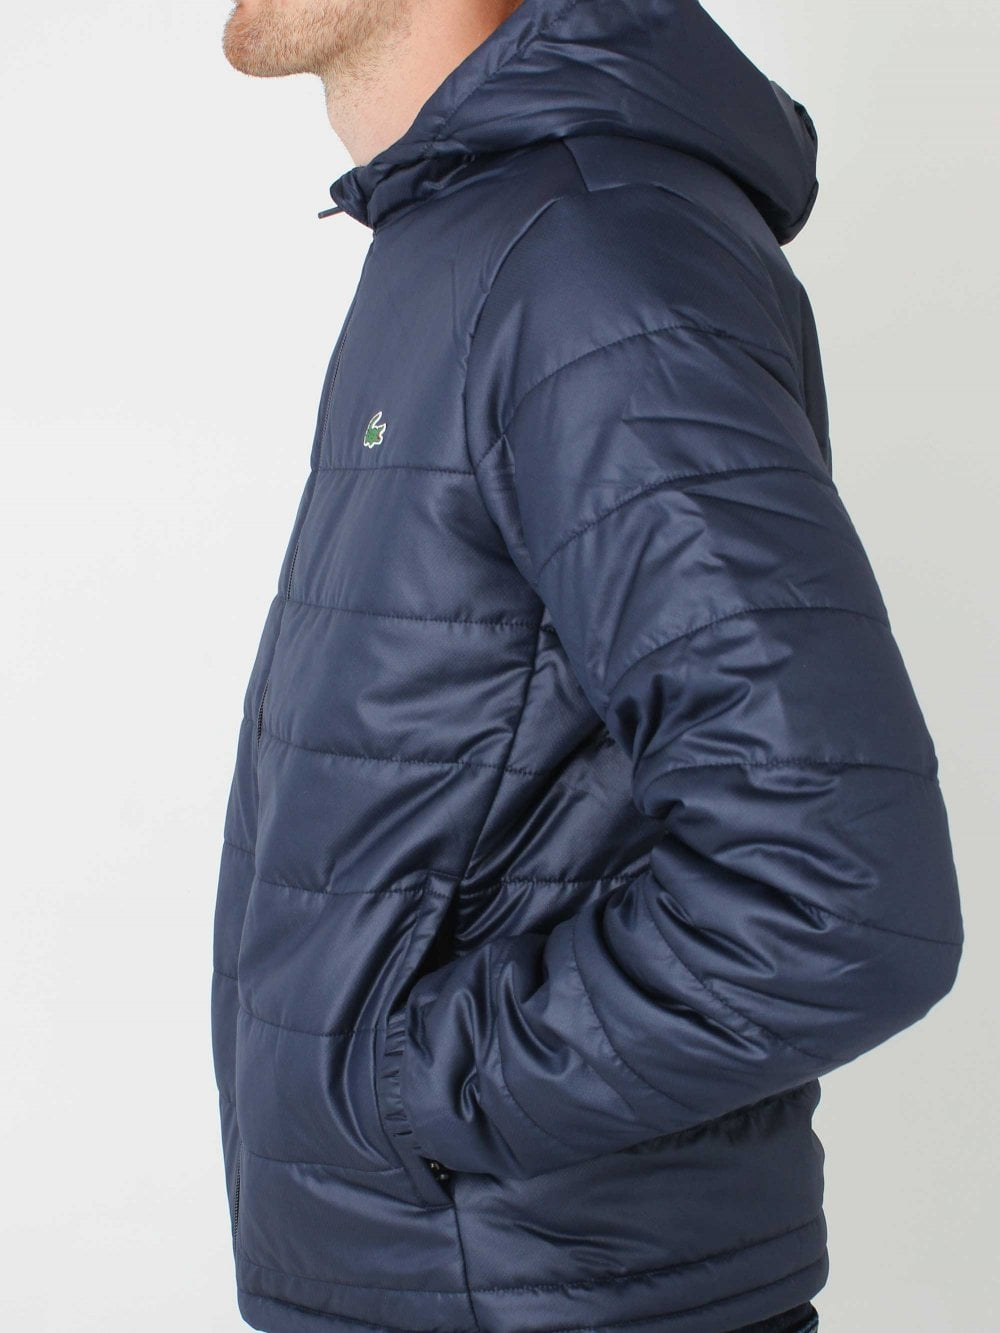 regard détaillé 57c90 ddfe6 Hooded Zip Jacket - Navy